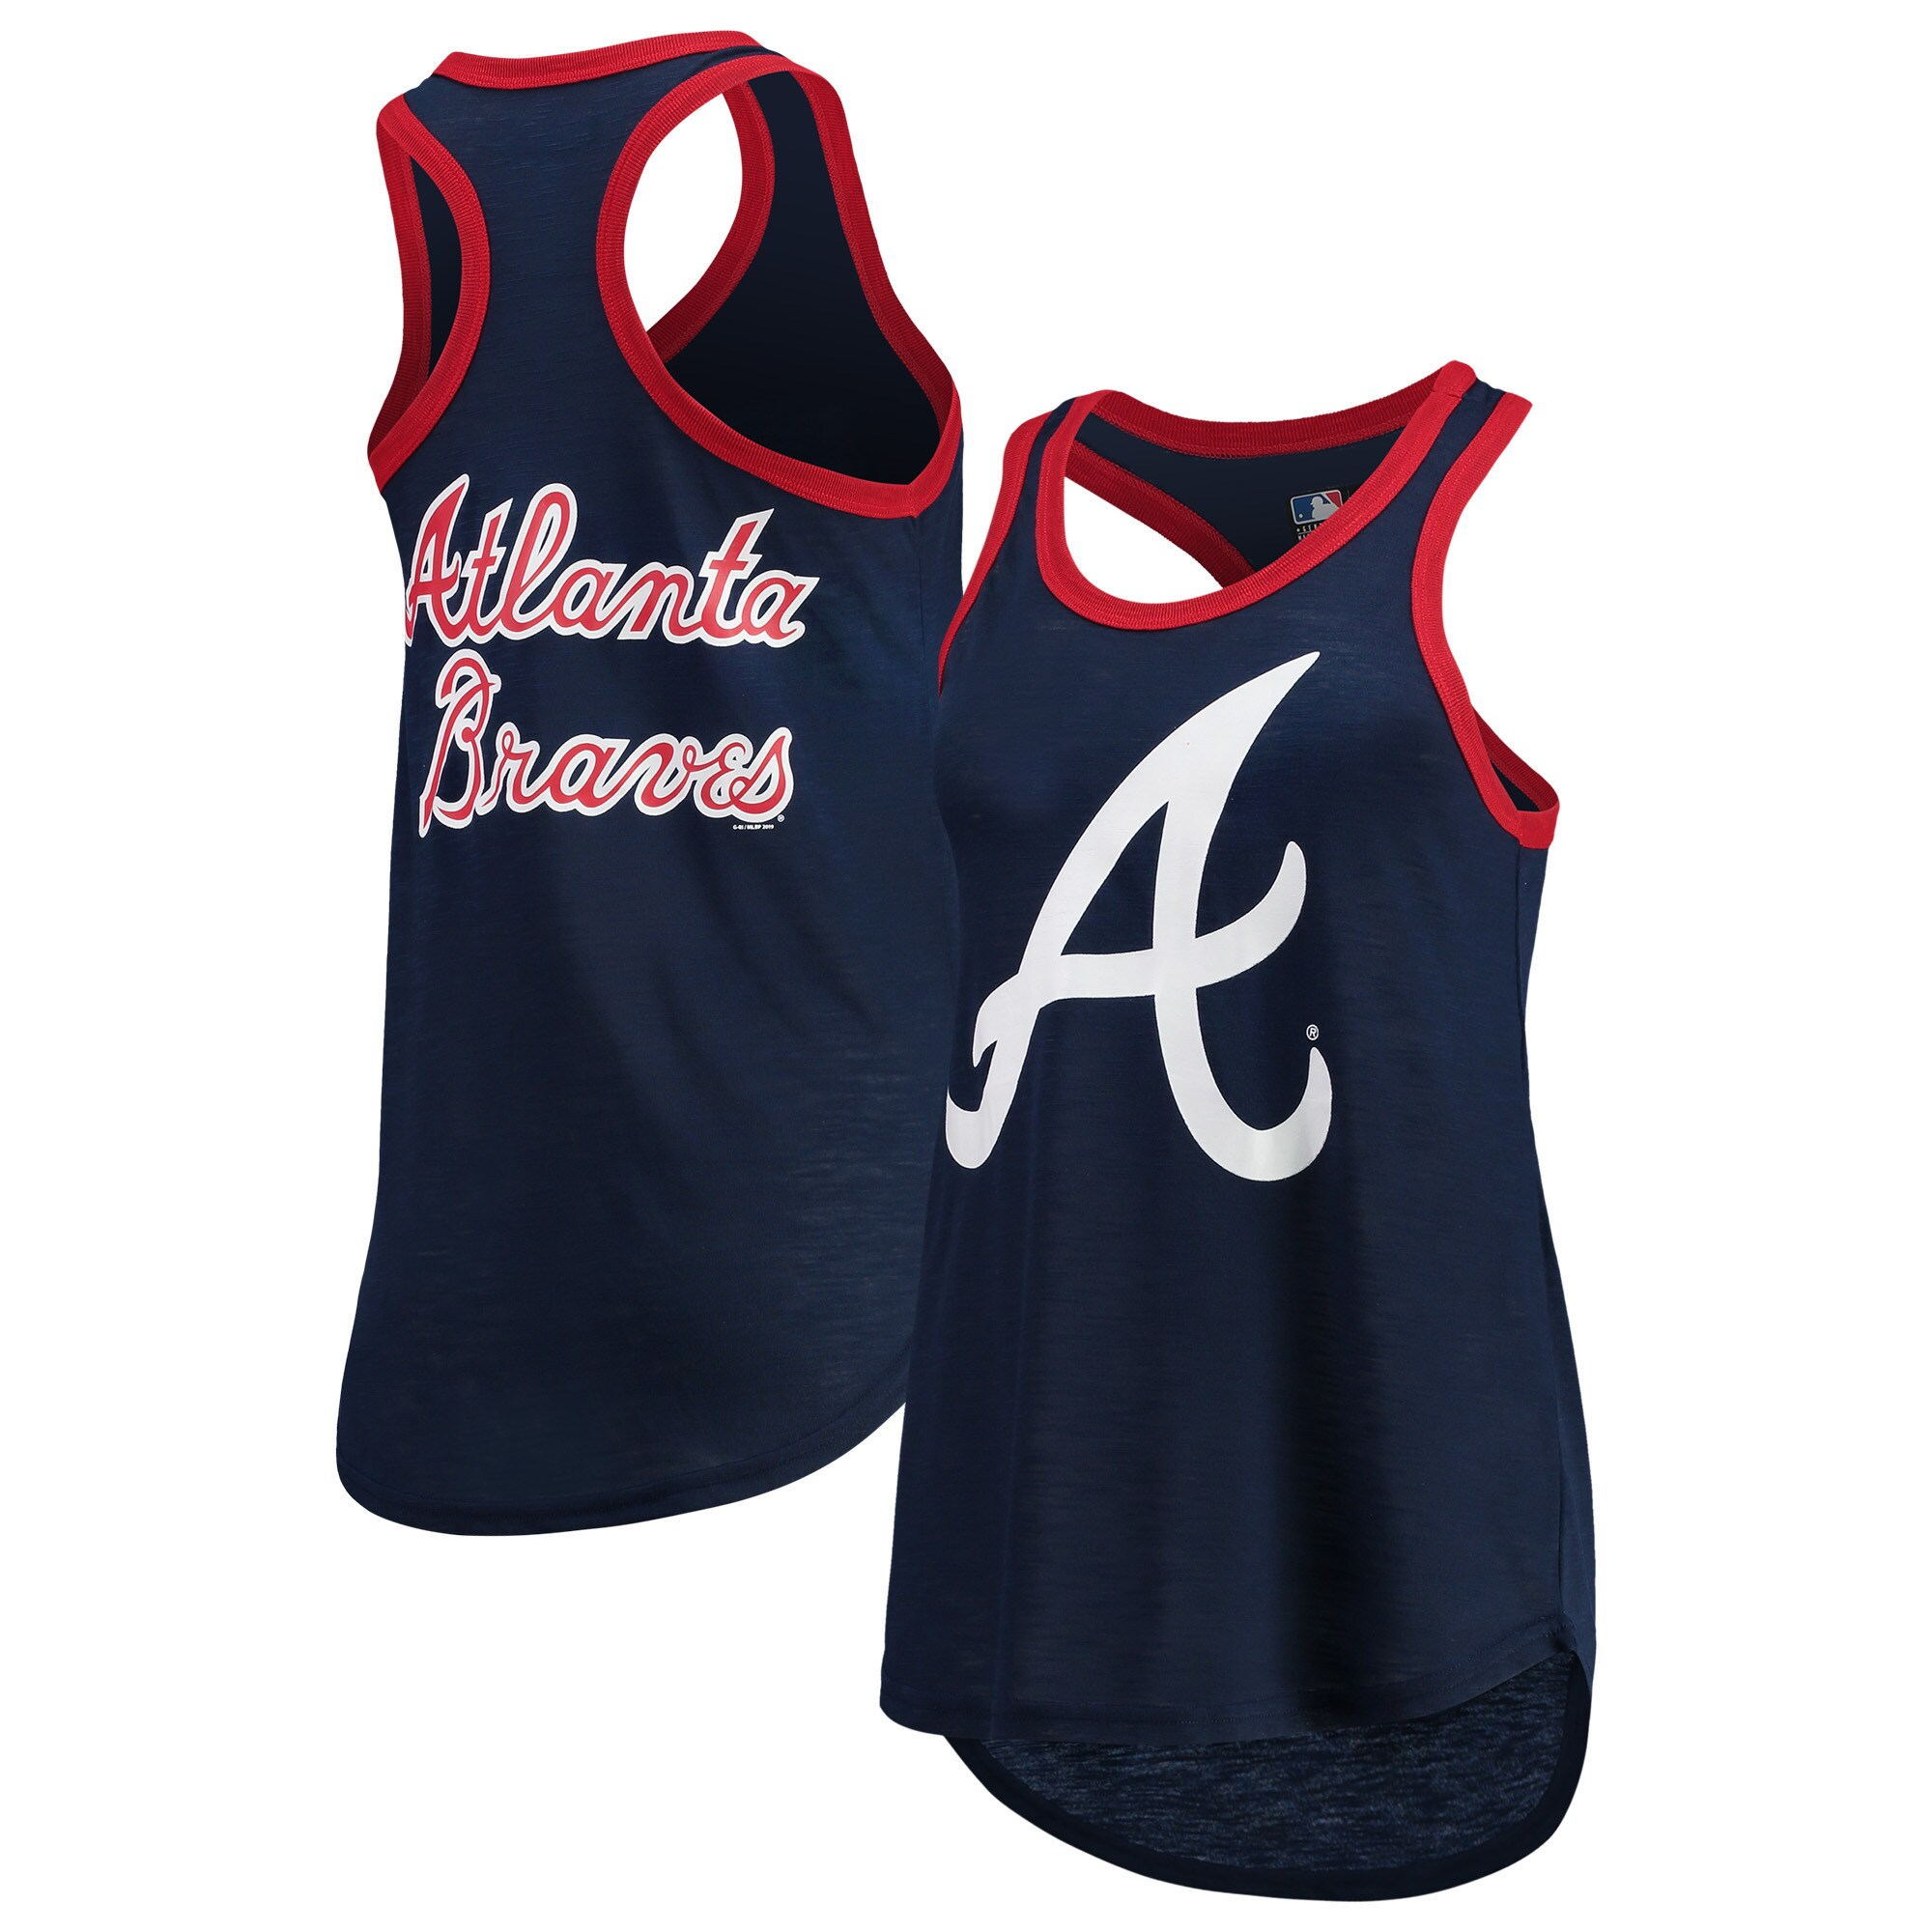 Atlanta Braves G-III 4Her by Carl Banks Women's Team Color Tater Tank Top - Navy